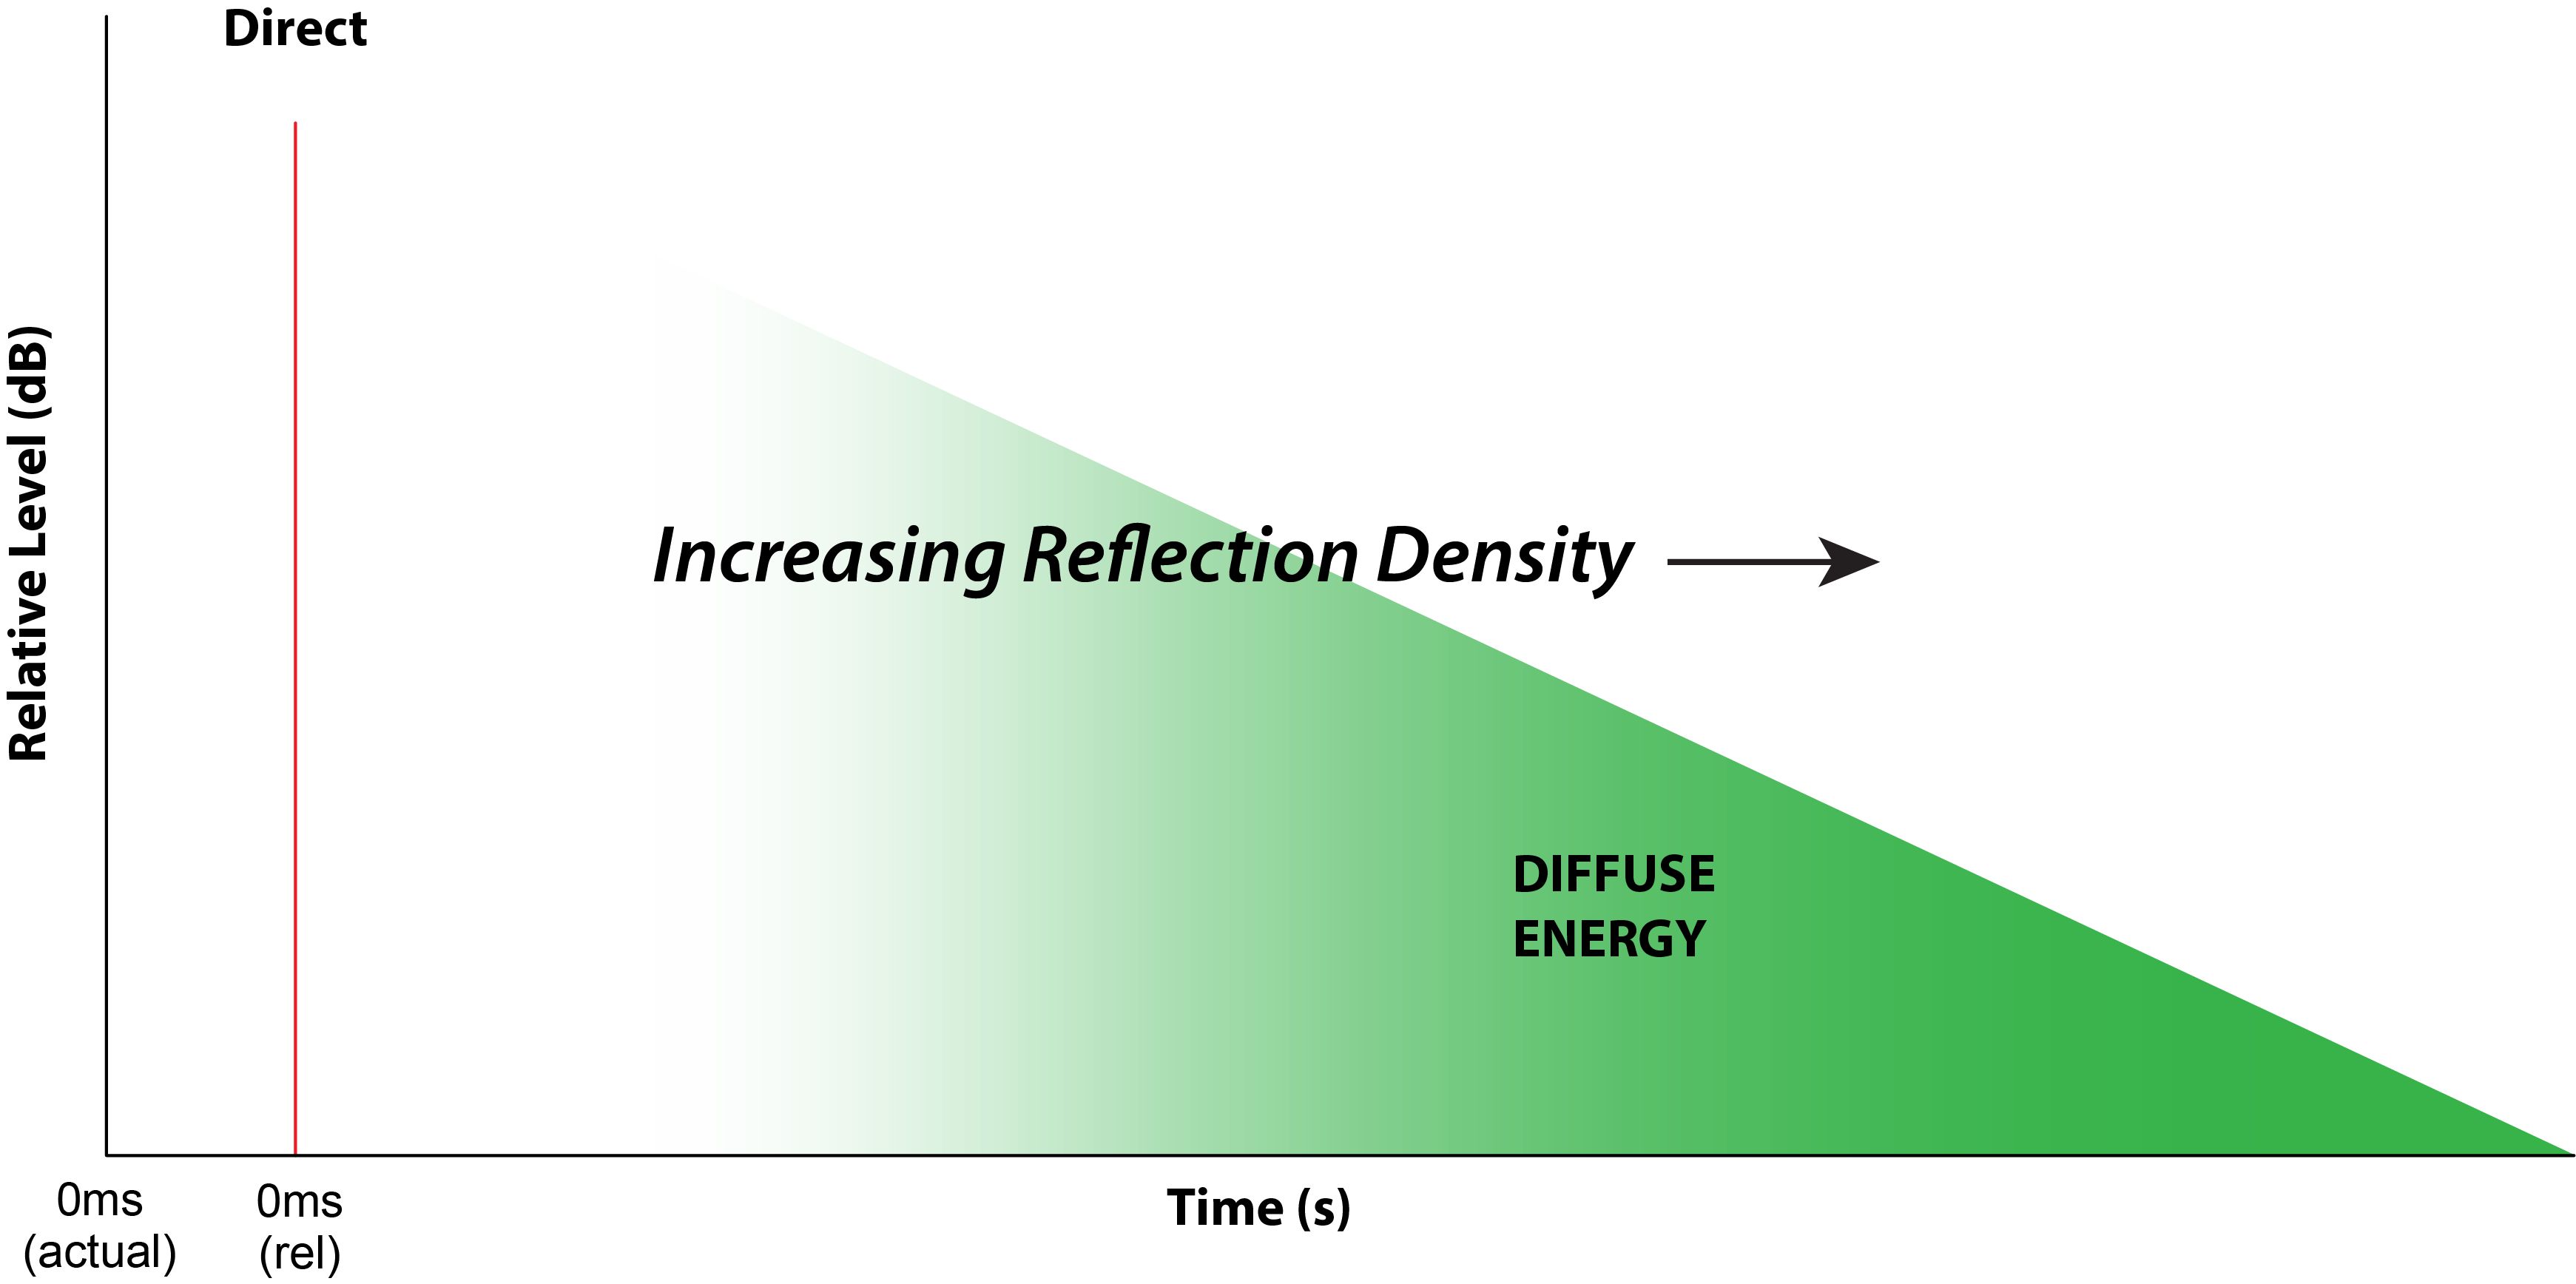 Figure 2 - The introduction of an impulse of sound energy into a space produces room reflections that increase in density over time as the sound level decreases.